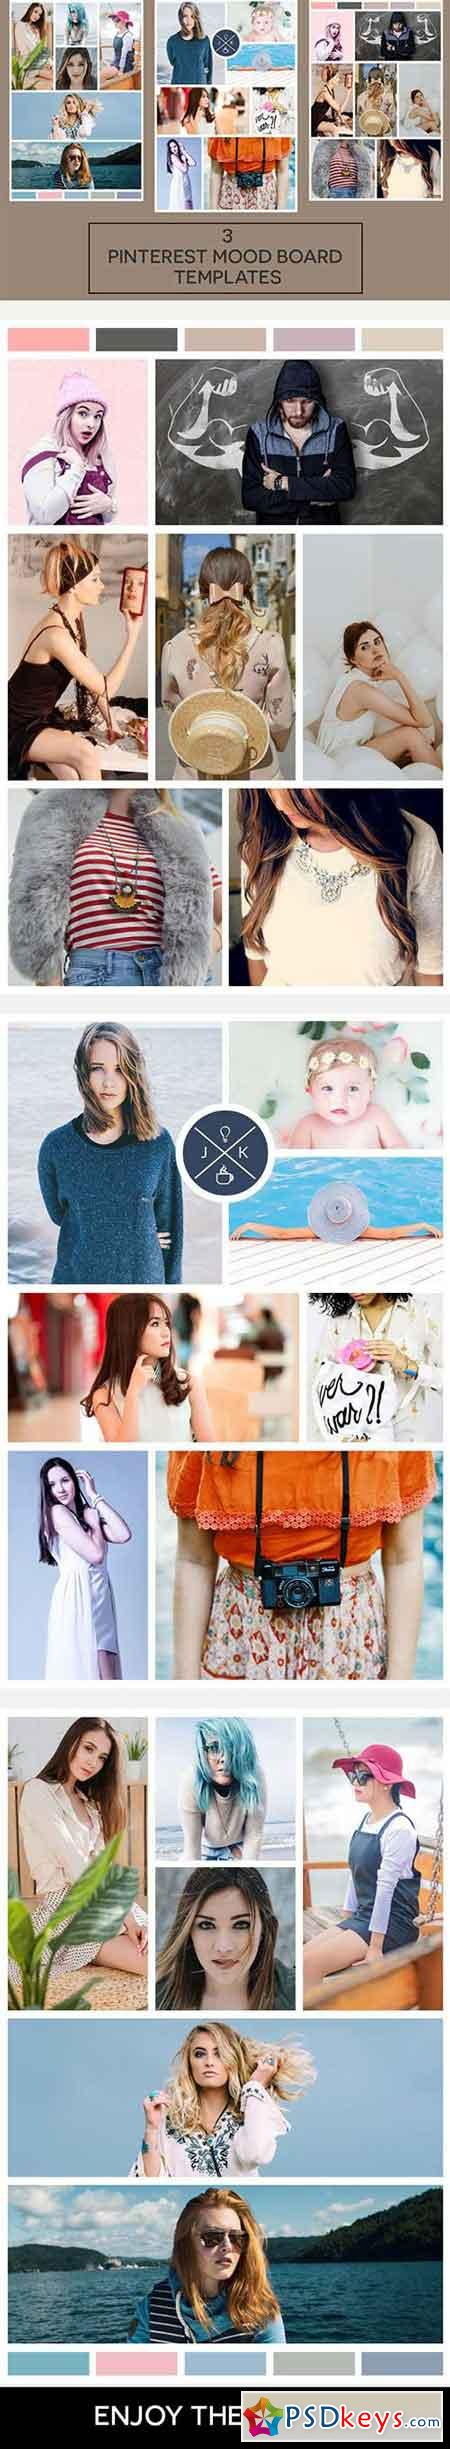 Pinterest Mood Board Templates